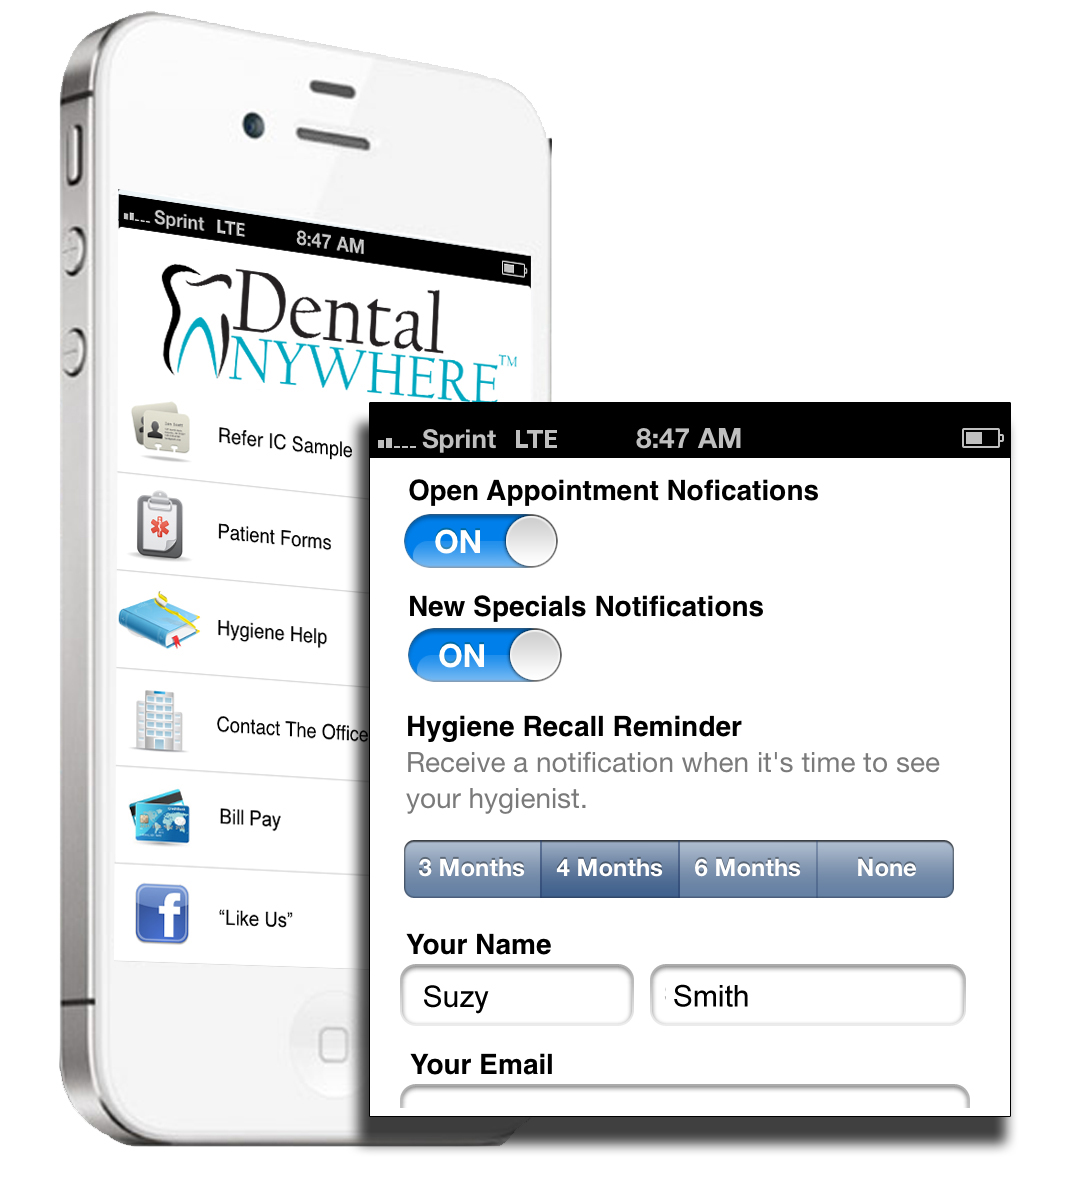 Dental Anywhere Mobile Apps Hygiene Recall Feature